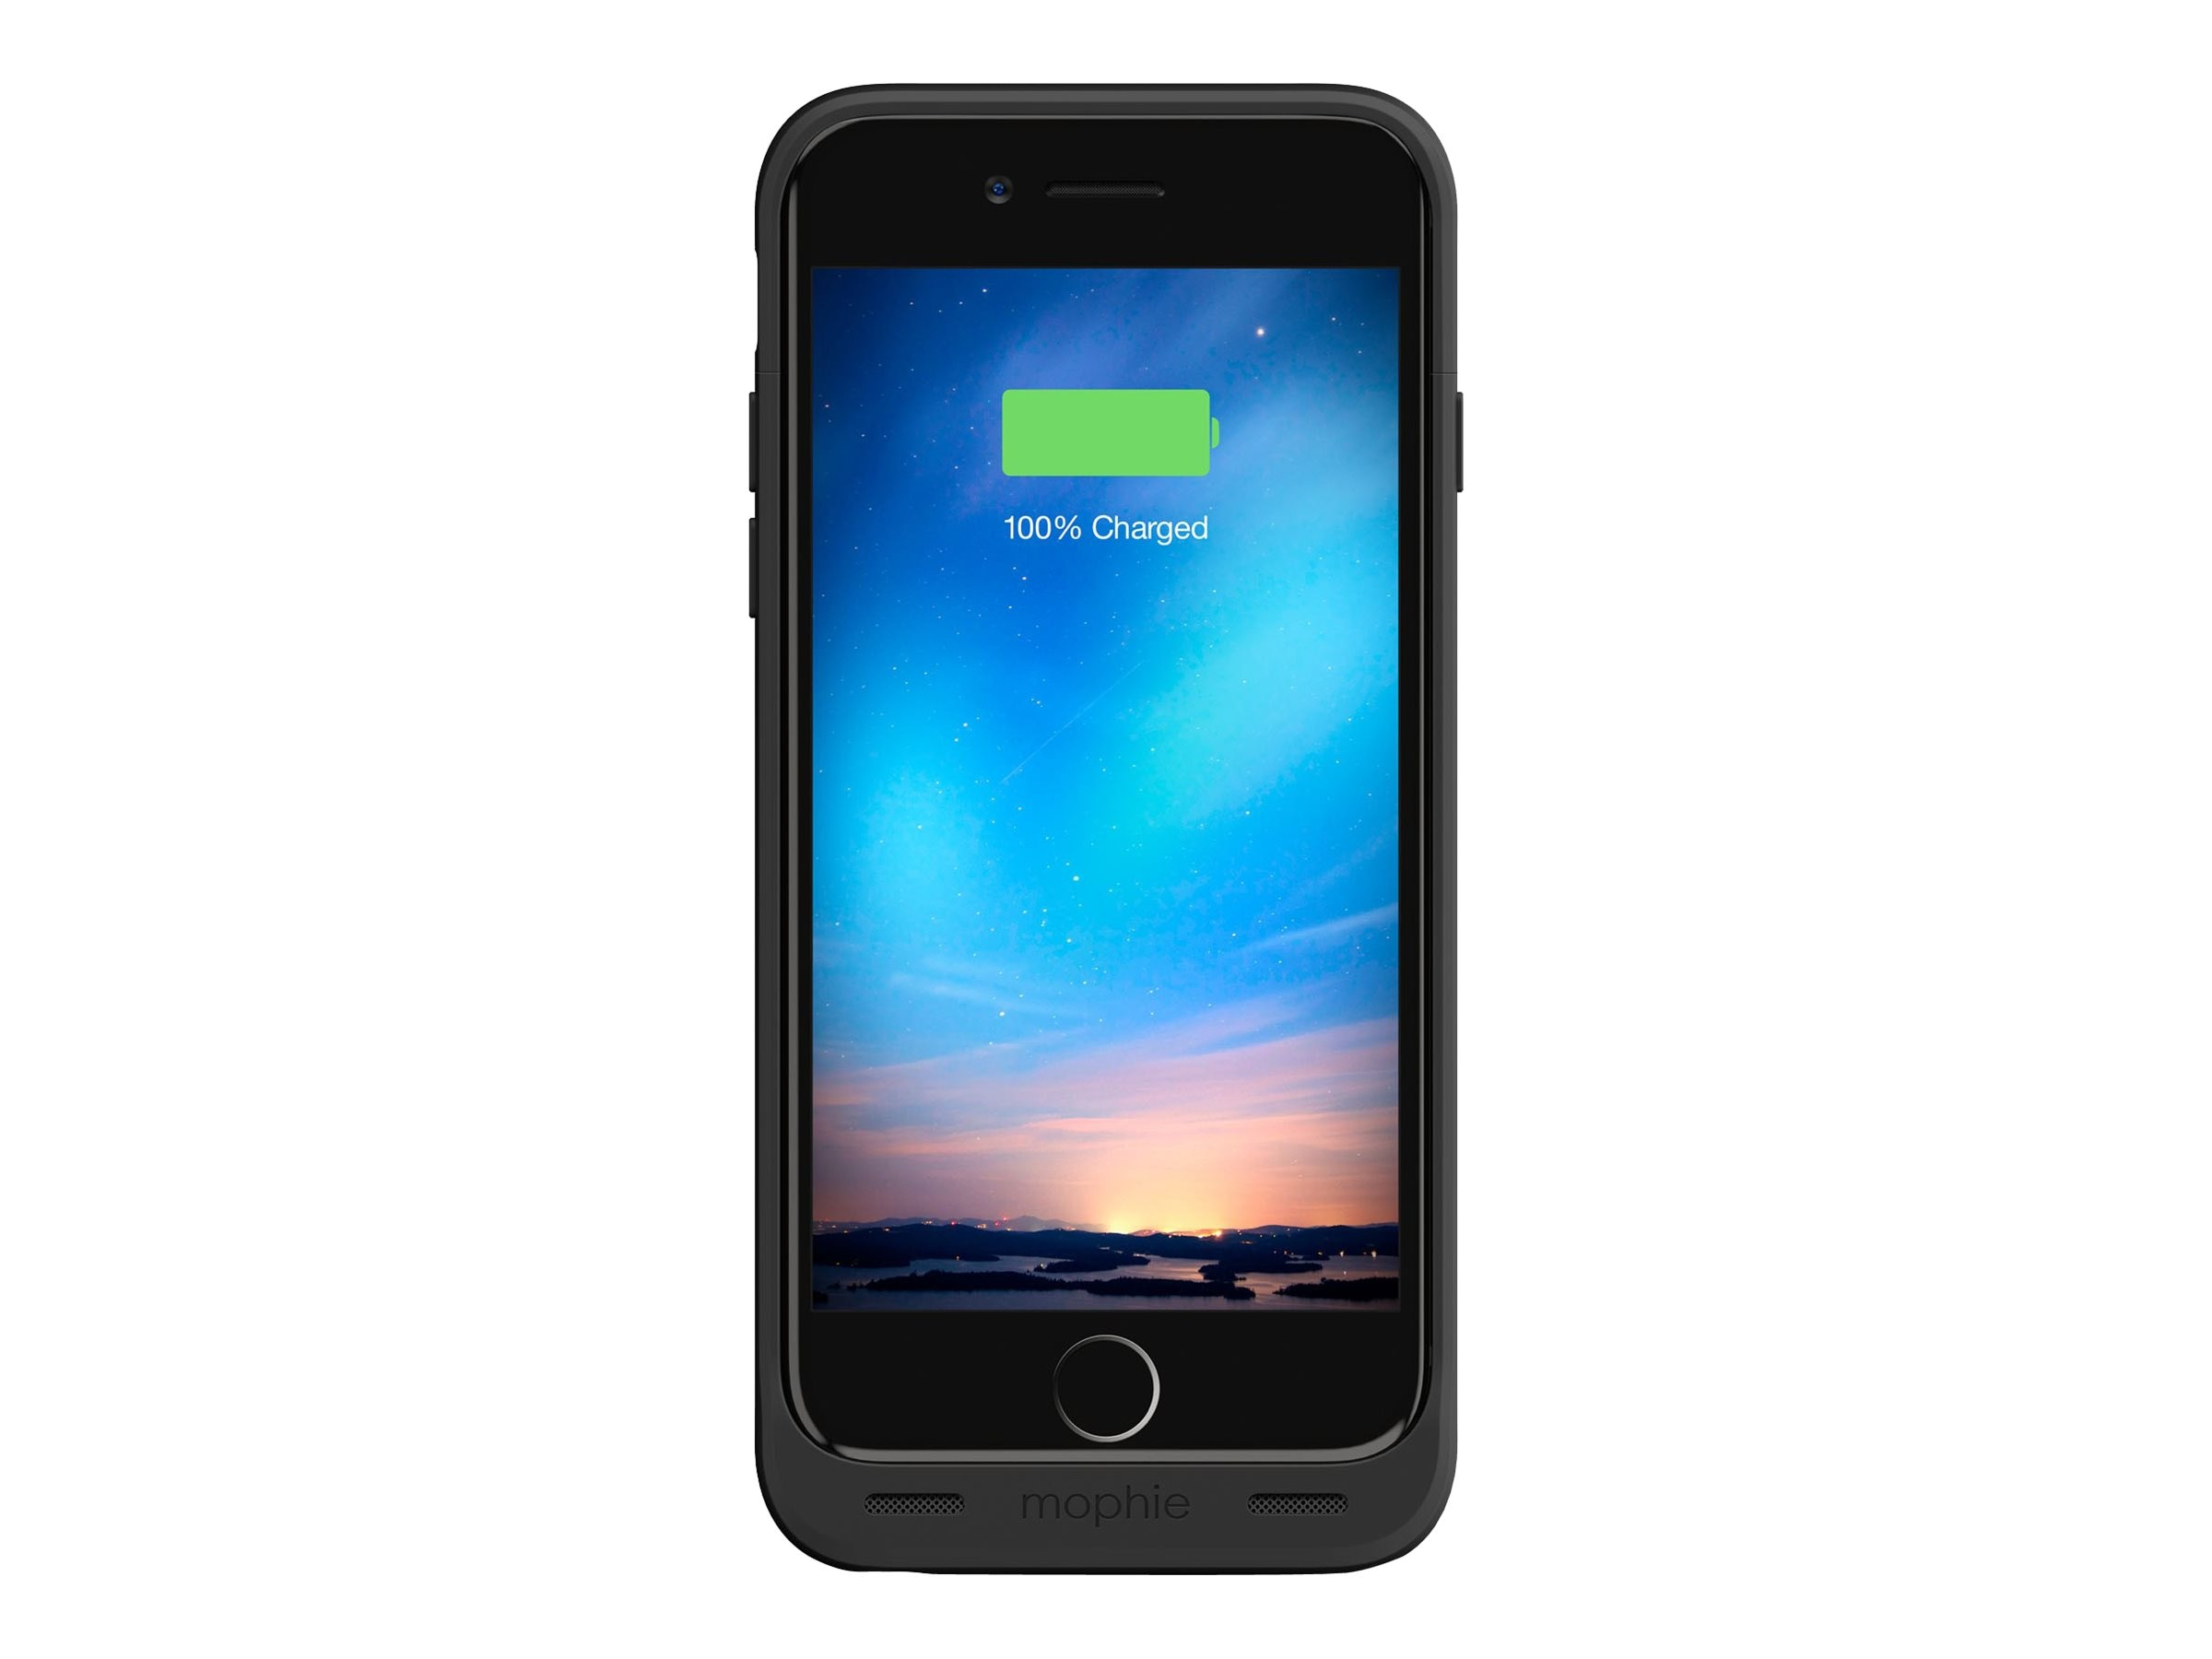 Juice Pack Reserve 1840mAh Battery for iPhone 6s 6, Black